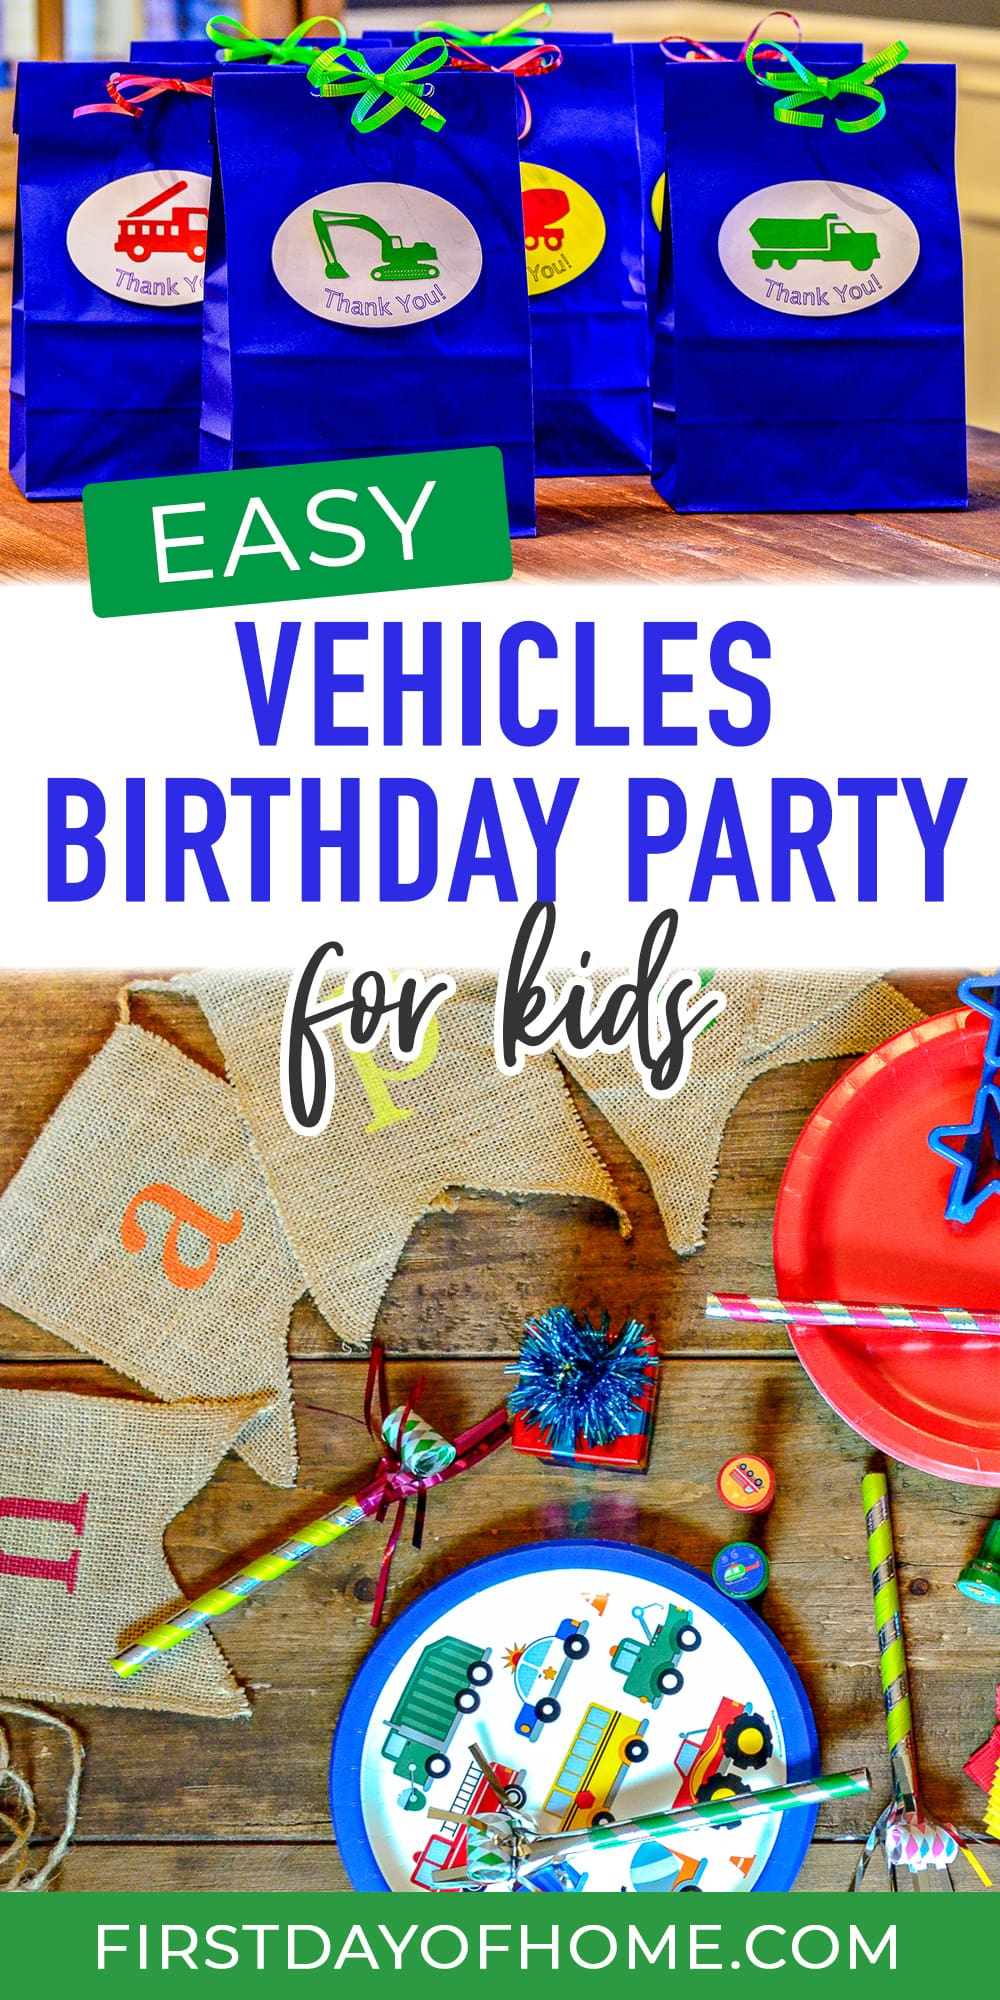 """Transportation party supplies and treat bags with text overlay reading """"Vehicles Birthday Party for Kids"""""""